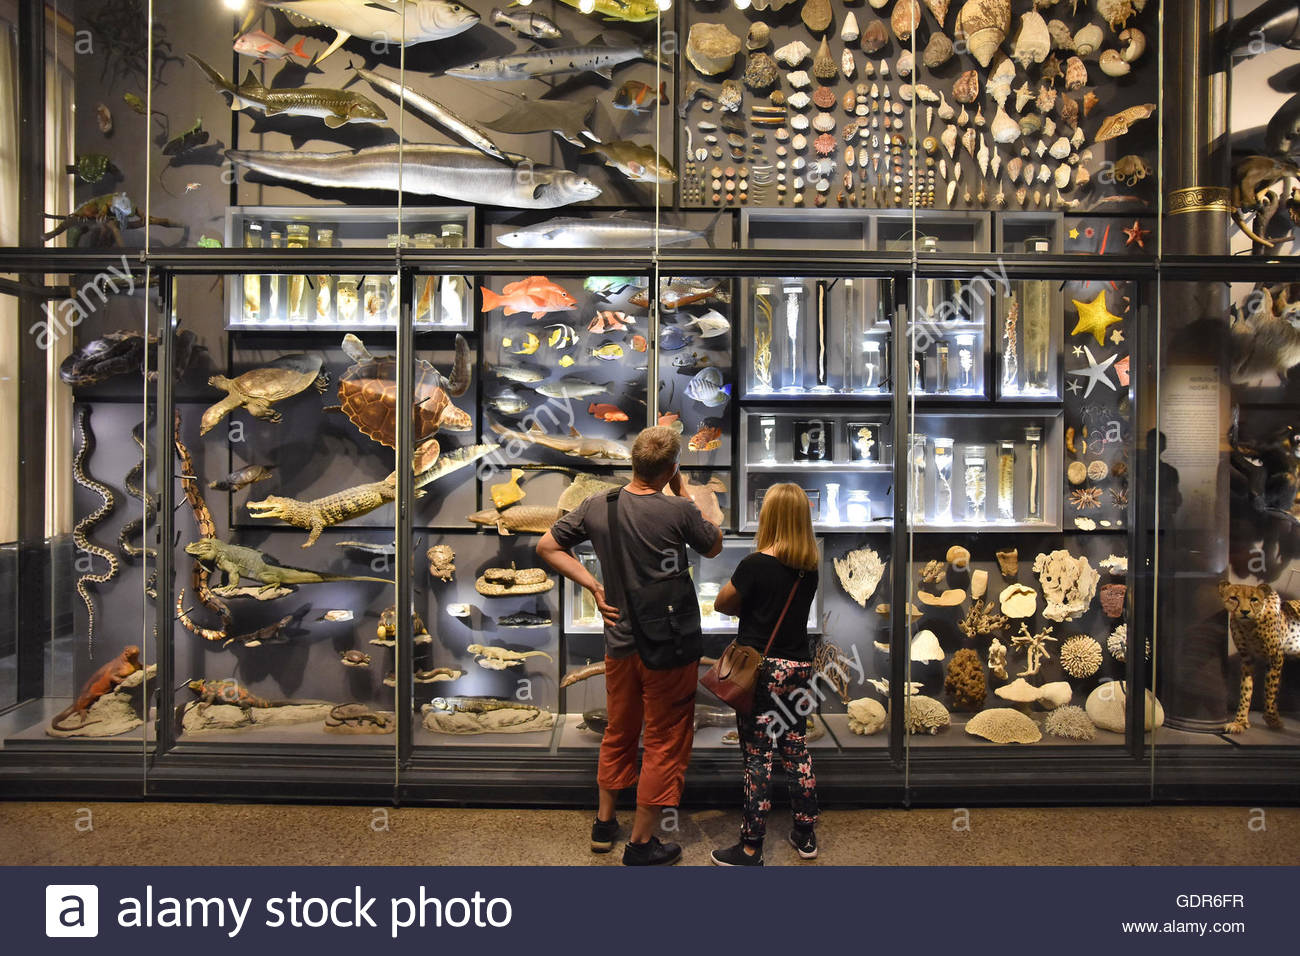 Visitors standing by large glass cabinets with various animals exhibits, Museum of Natural History Berlin Germany - Stock Image